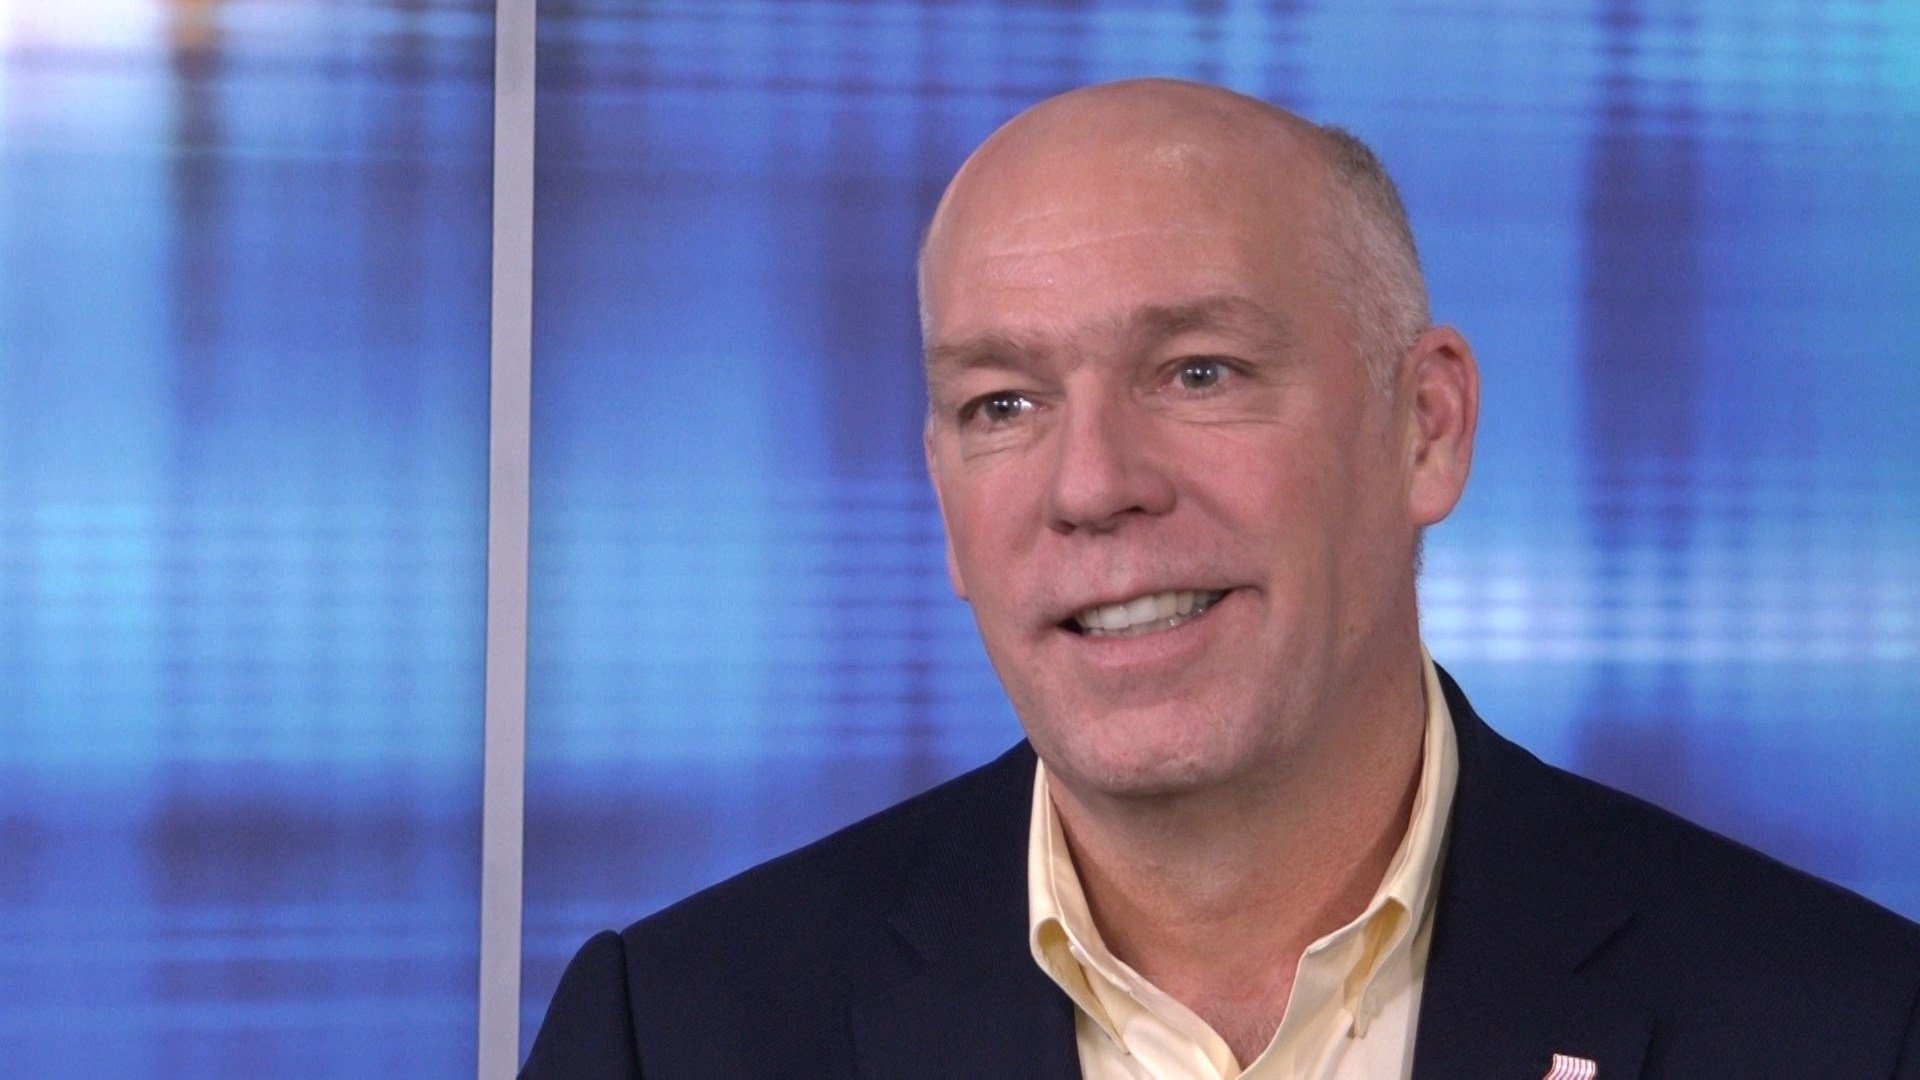 GOP U.S. House candidate Greg Gianforte